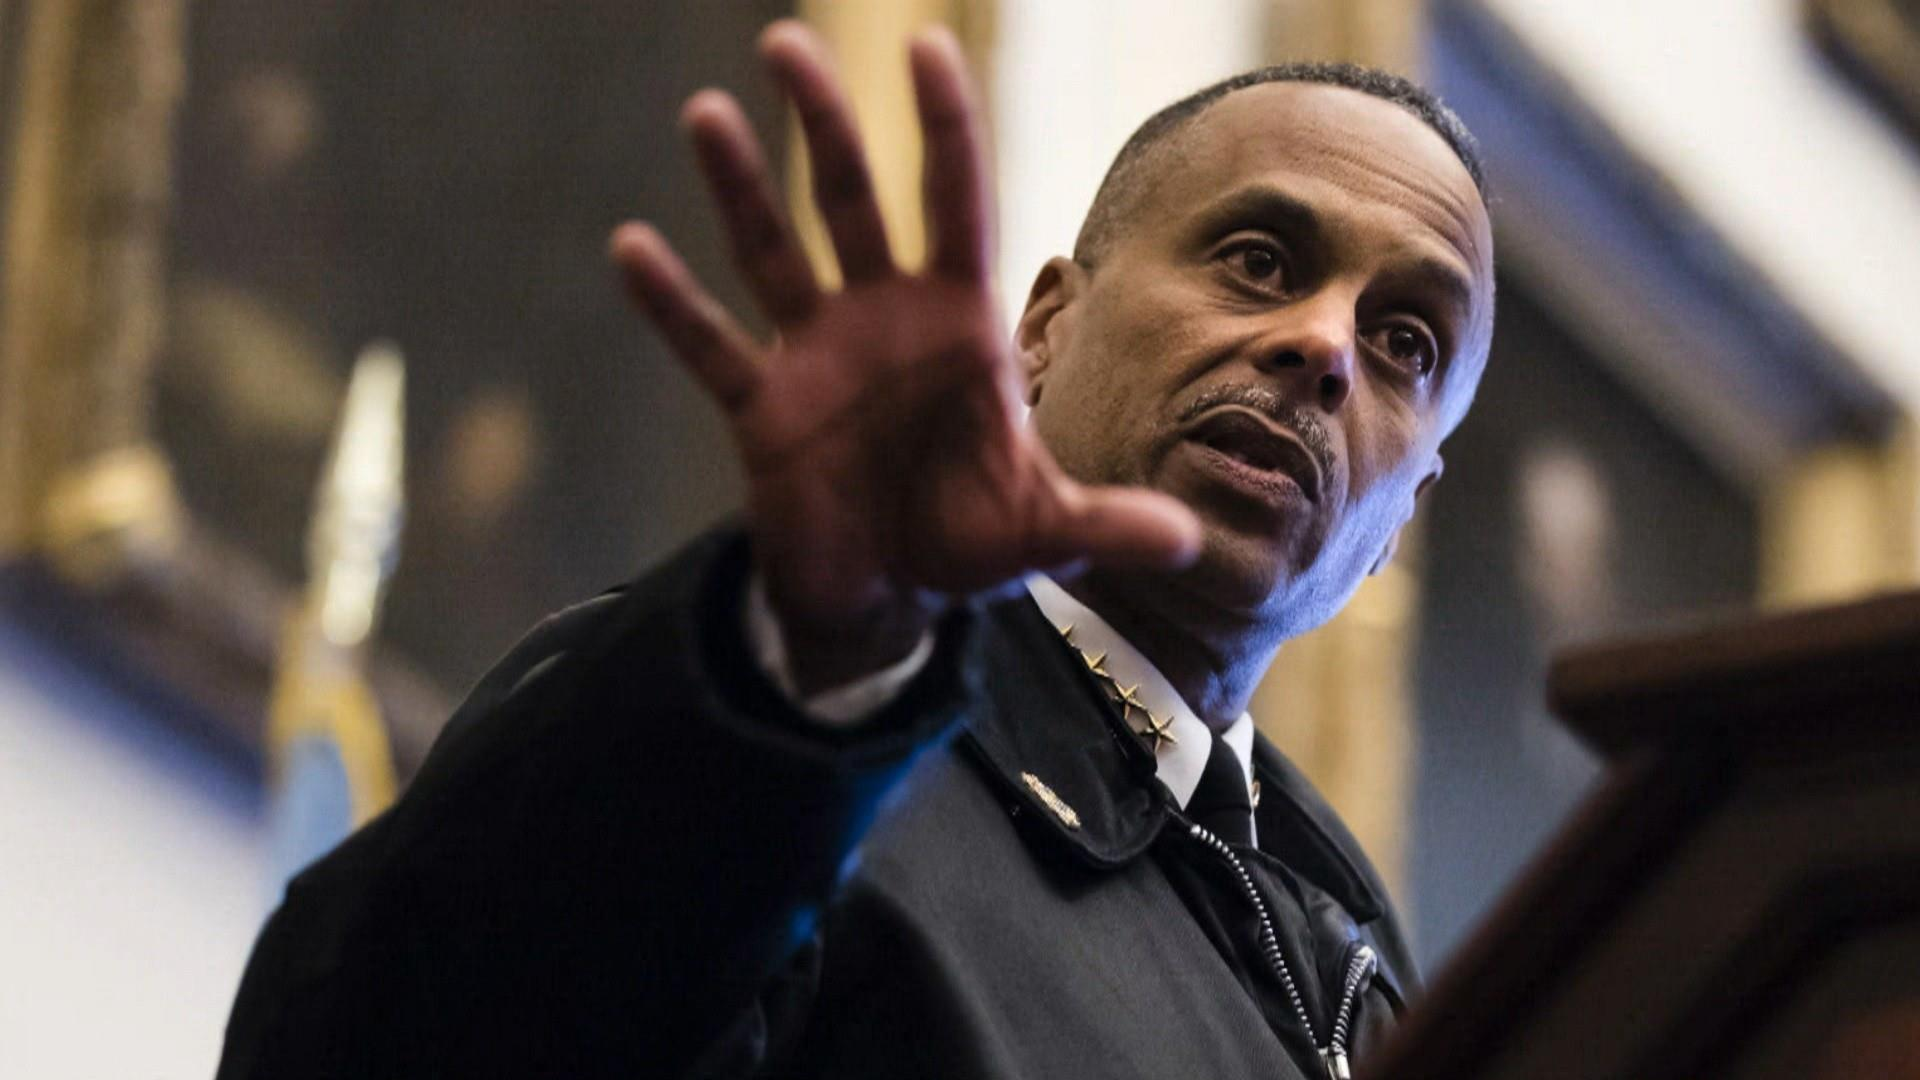 Philadelphia police commissioner abruptly resigns amid multiple scandals